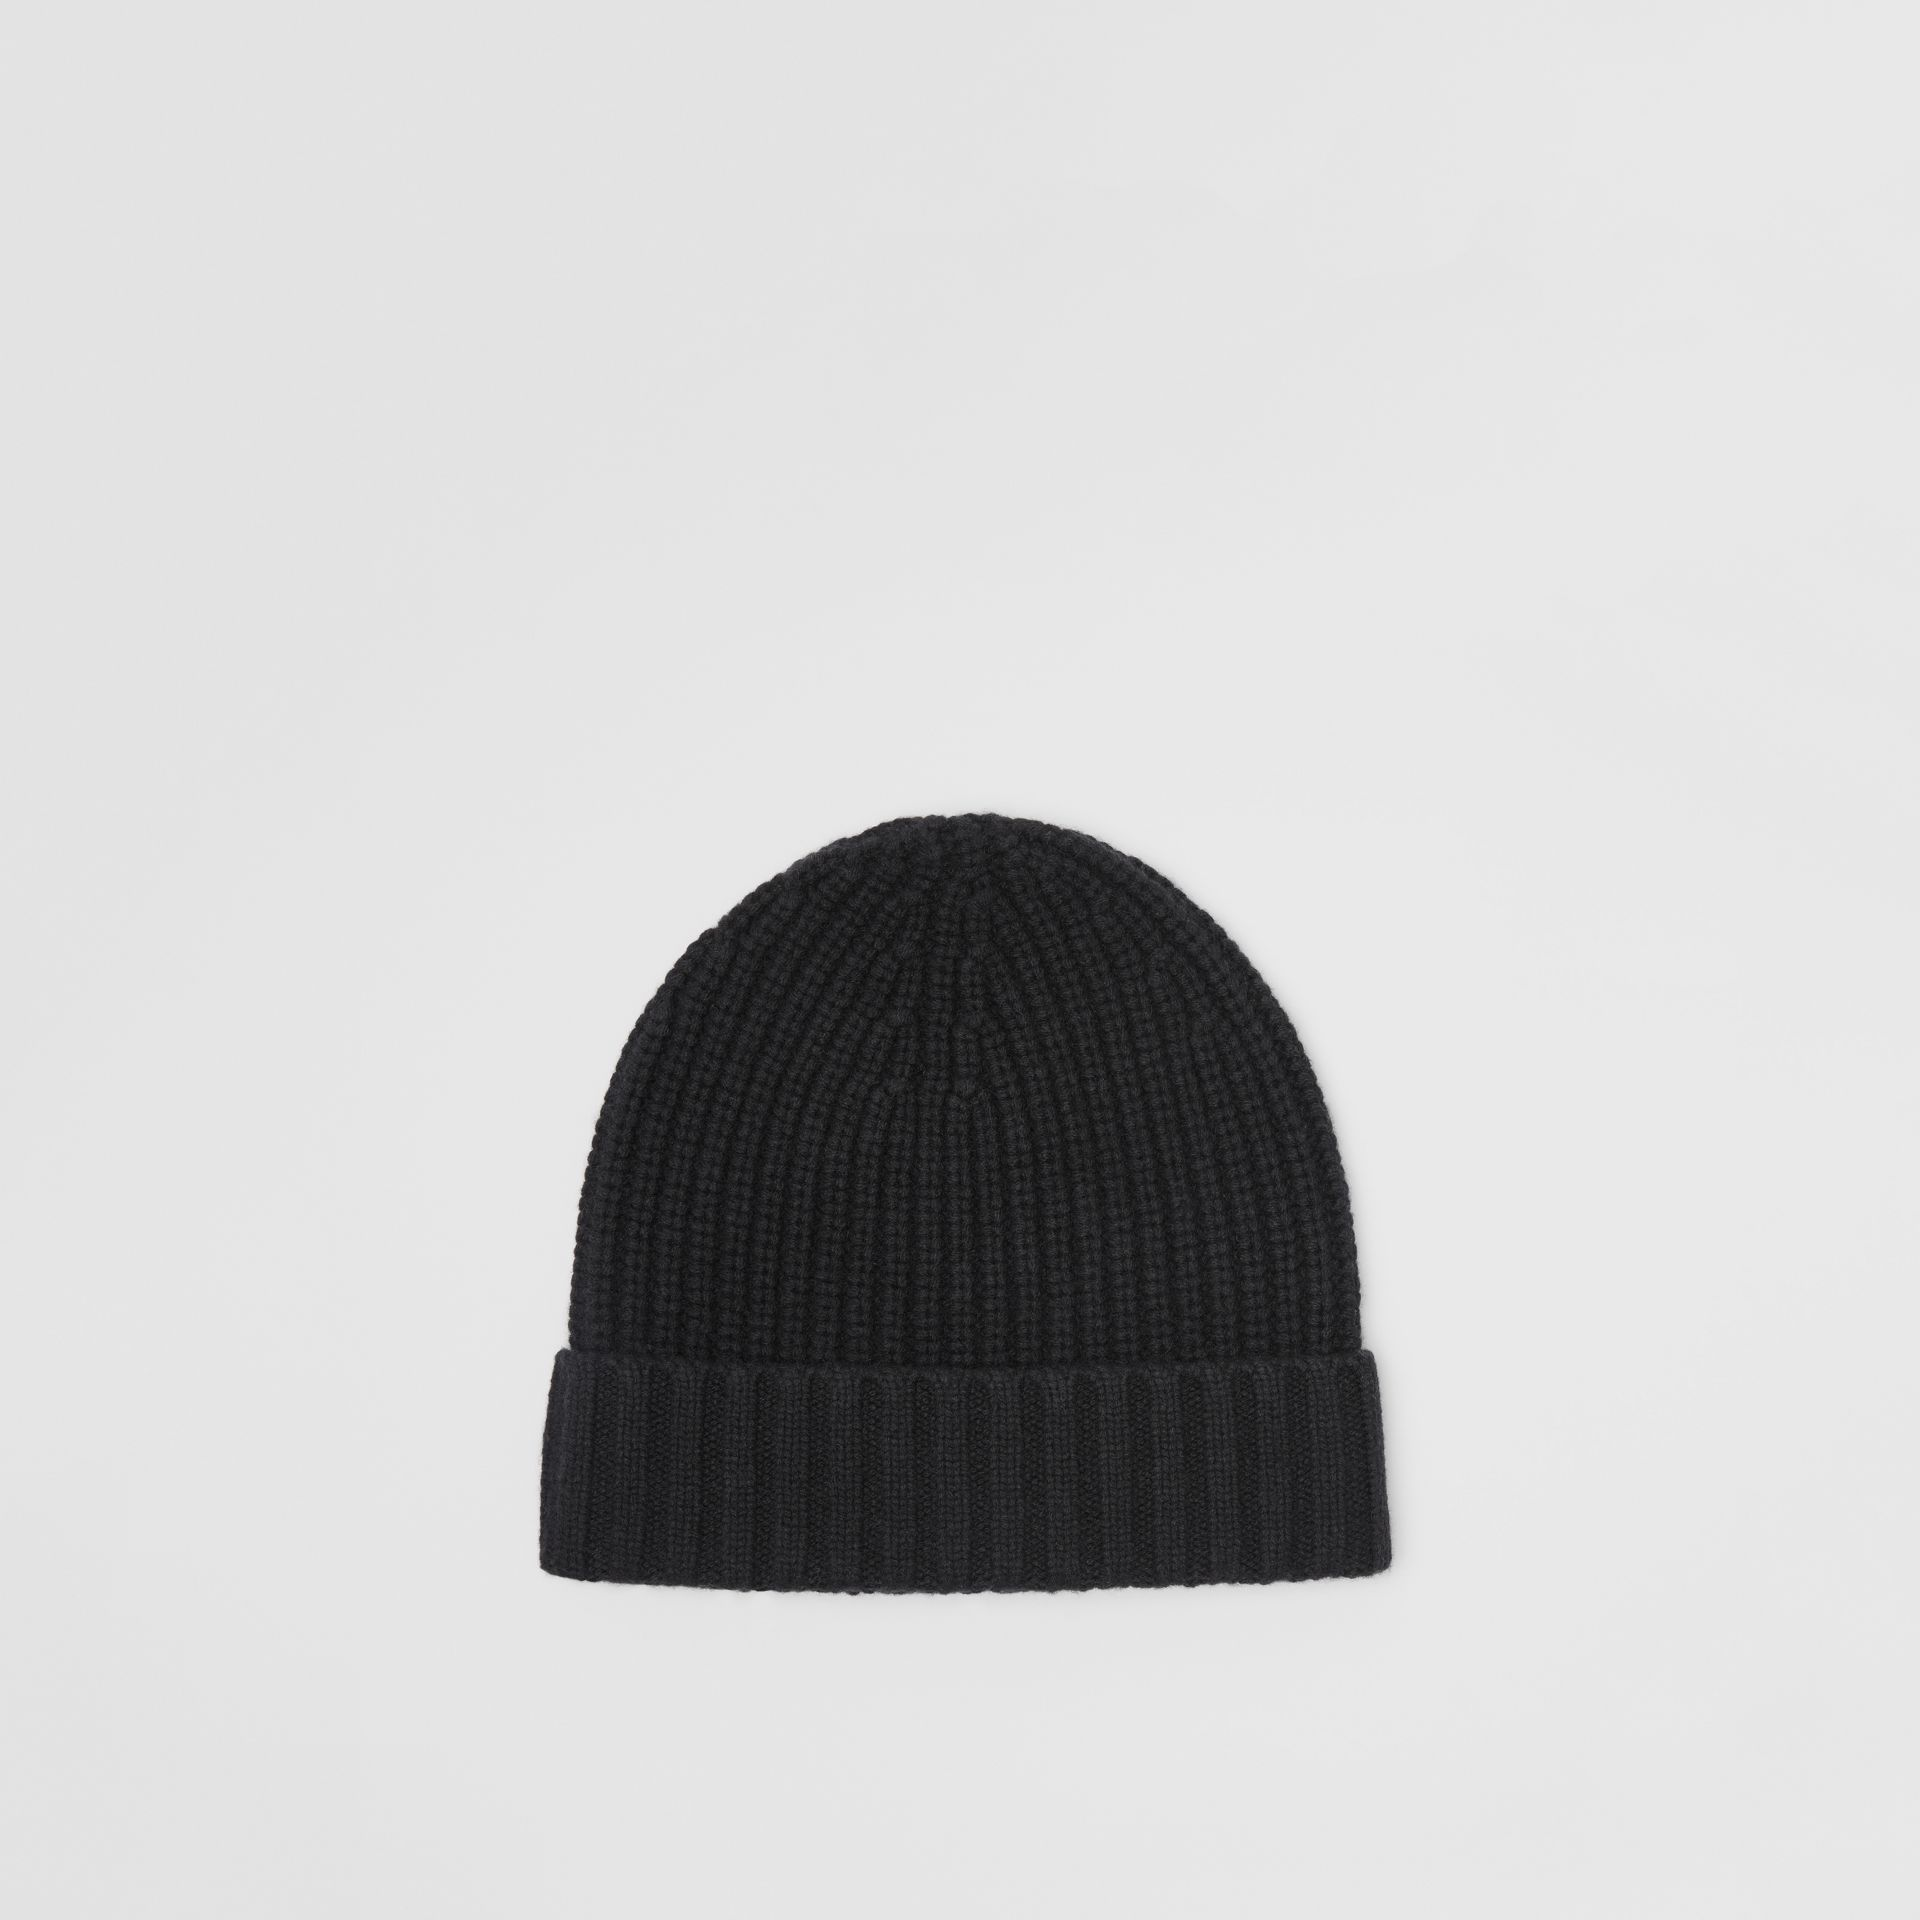 Embroidered Crest Rib Knit Wool Cashmere Beanie in Black | Burberry Singapore - gallery image 4